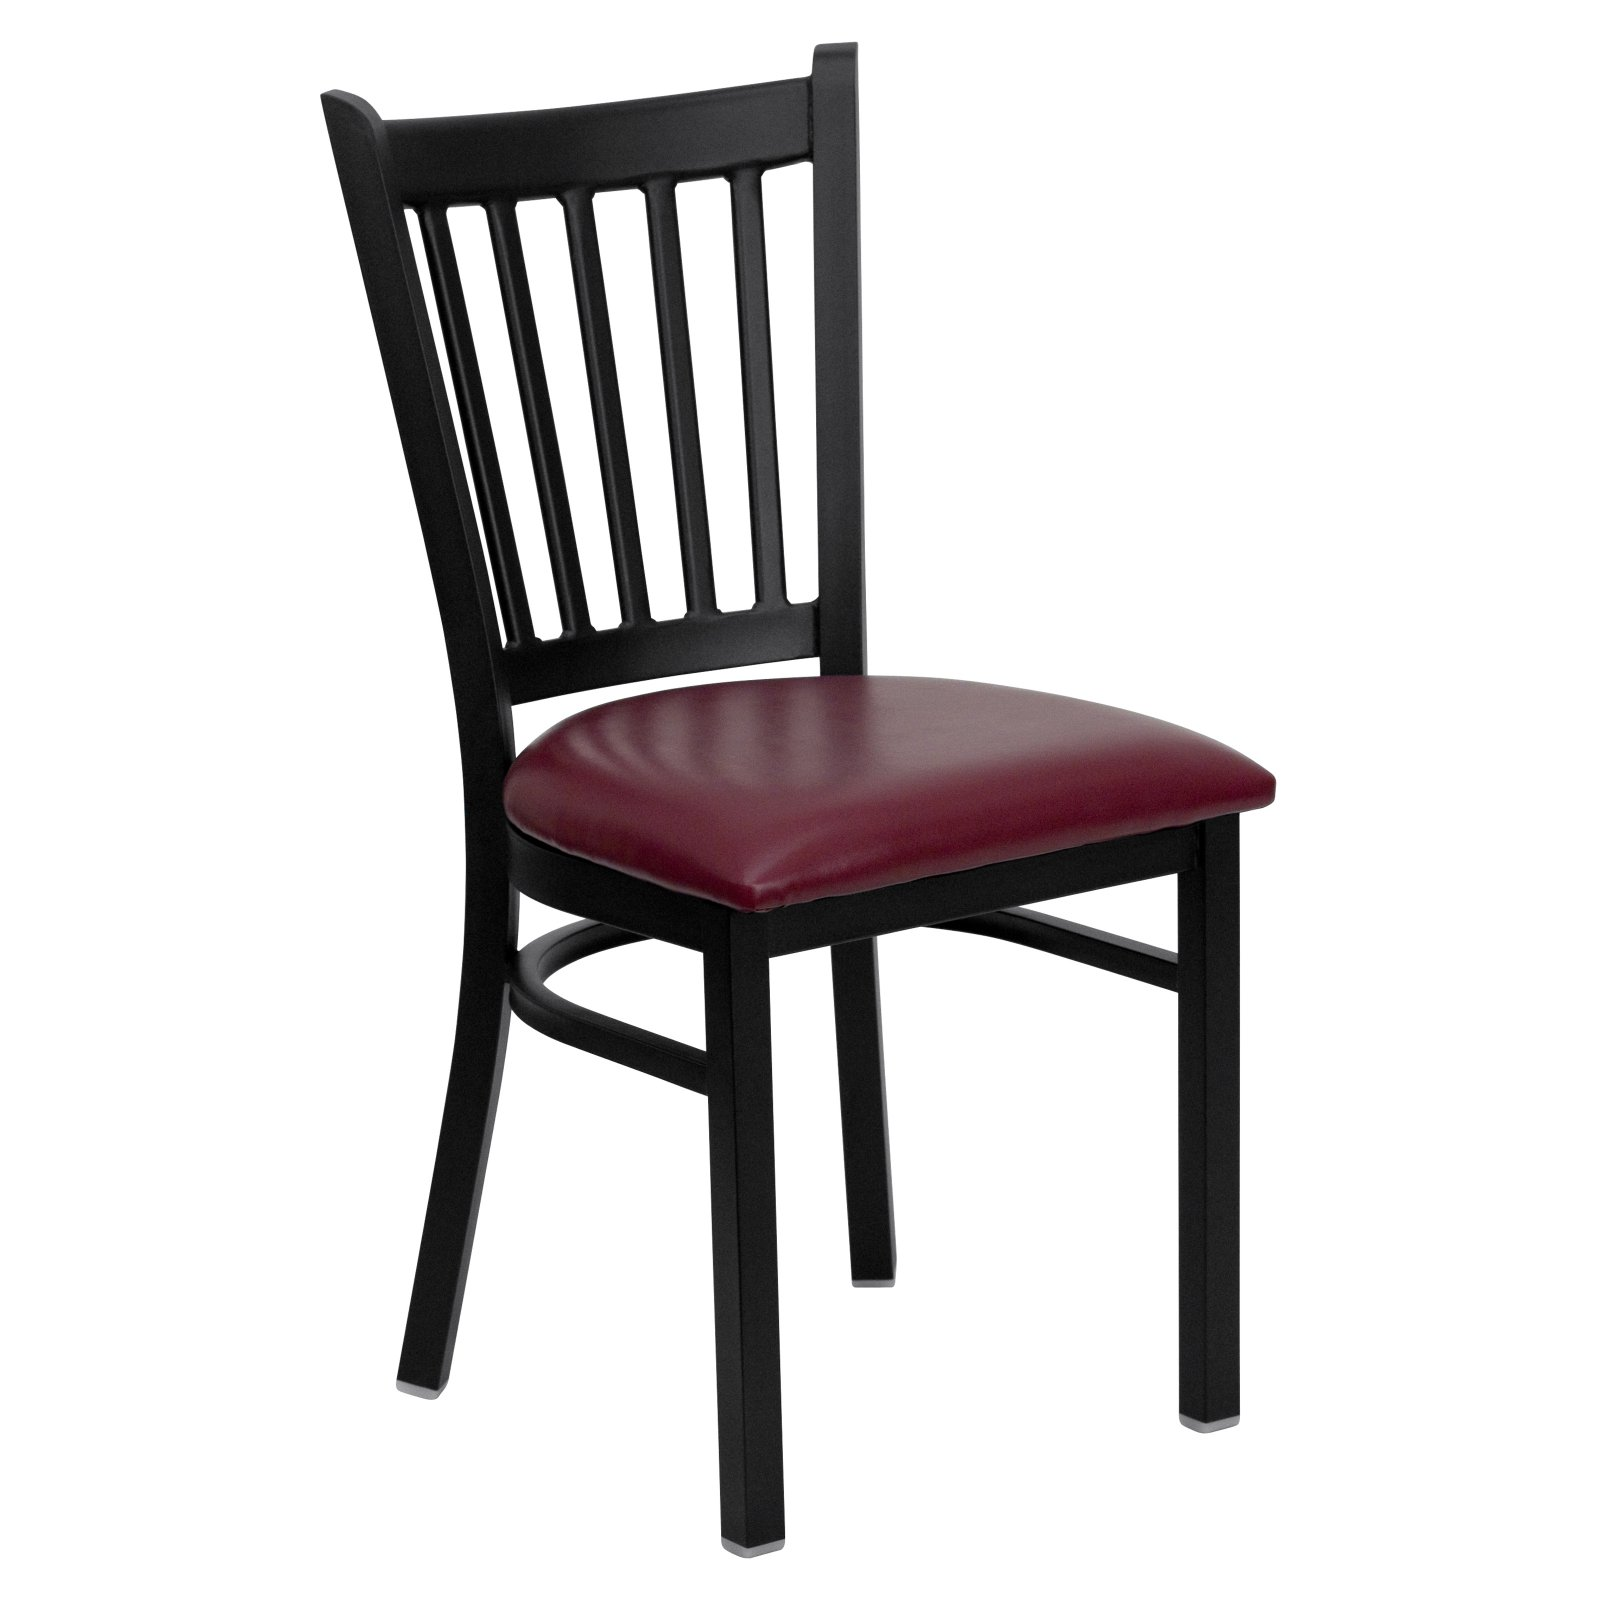 HERCULES Series Black Vertical Back Metal Restaurant Chair - Burgundy Vinyl Seat